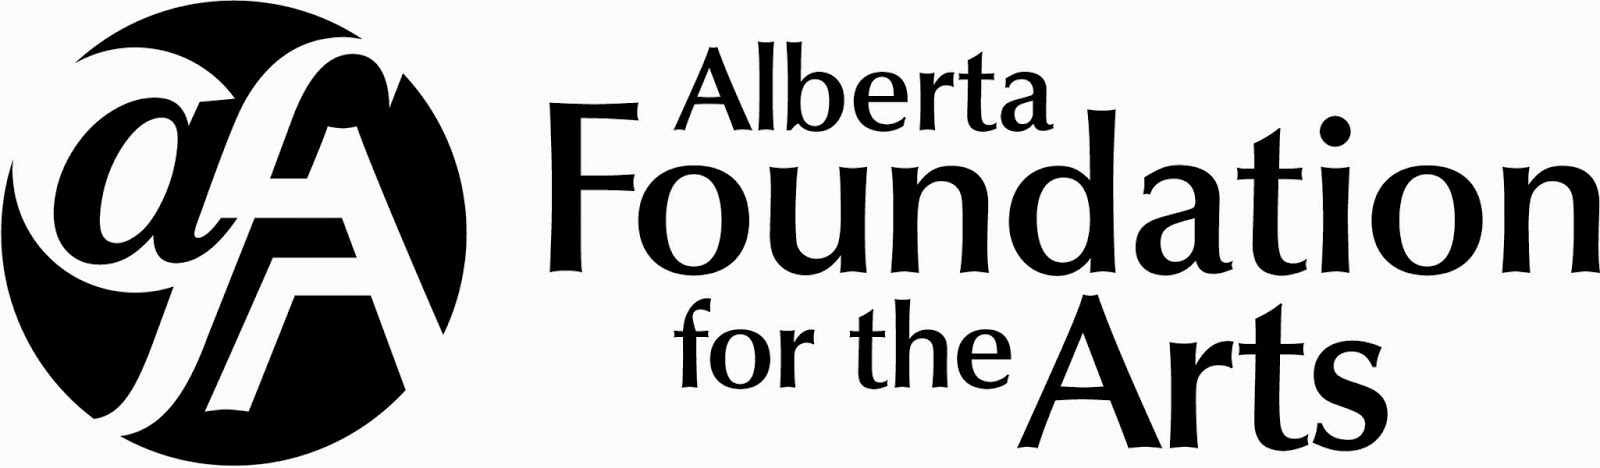 The Alberta Foundation for the Arts logo